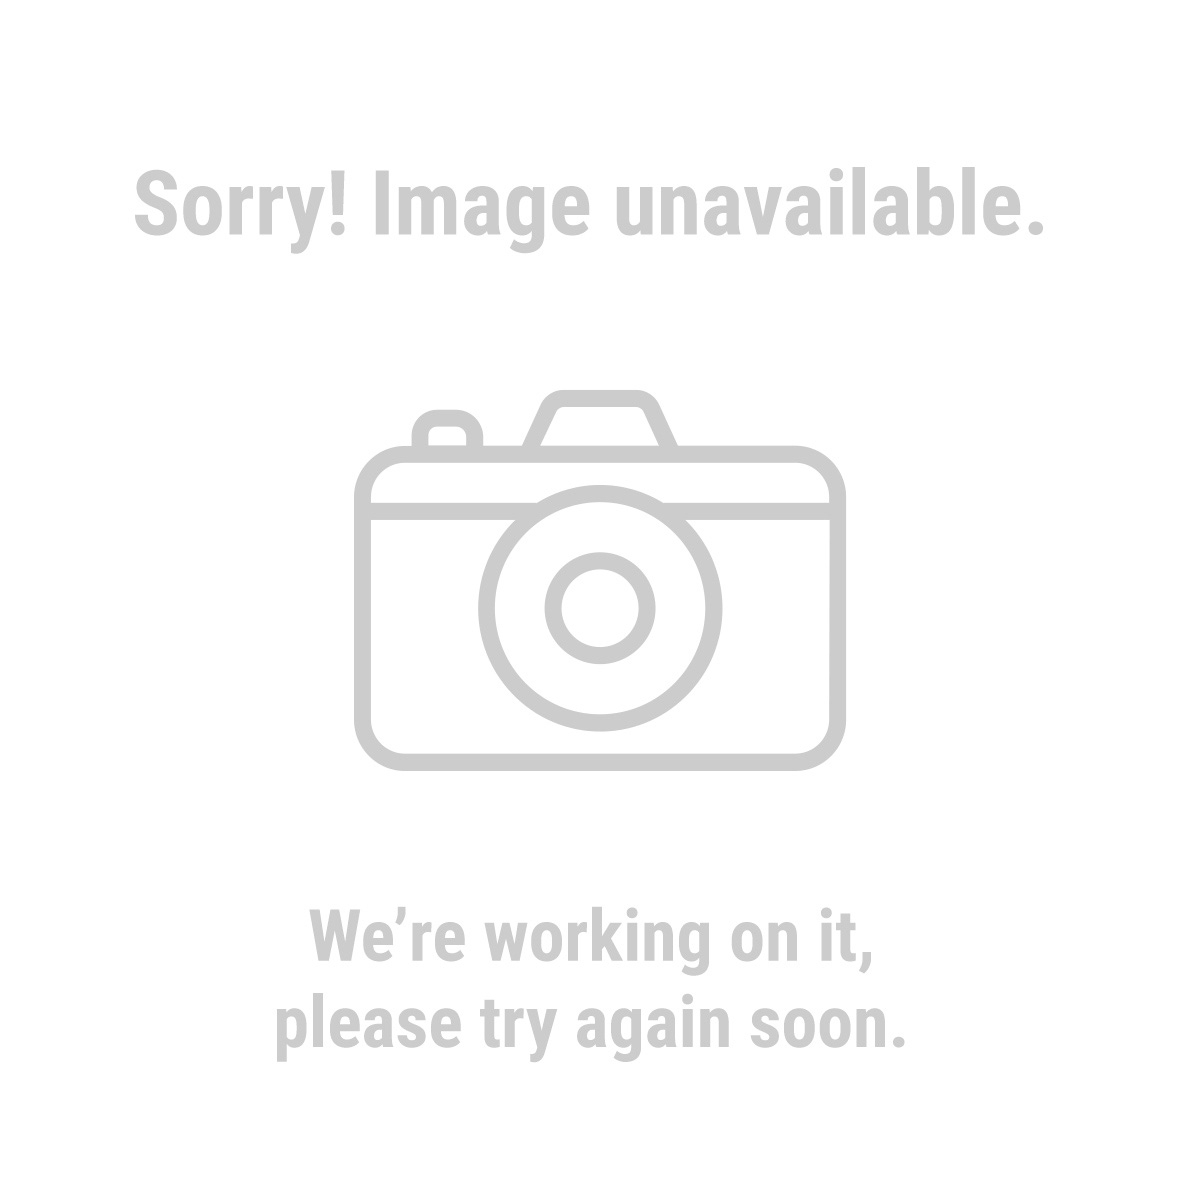 CoverPro 63055 10 ft. x 17 ft. Portable Garage